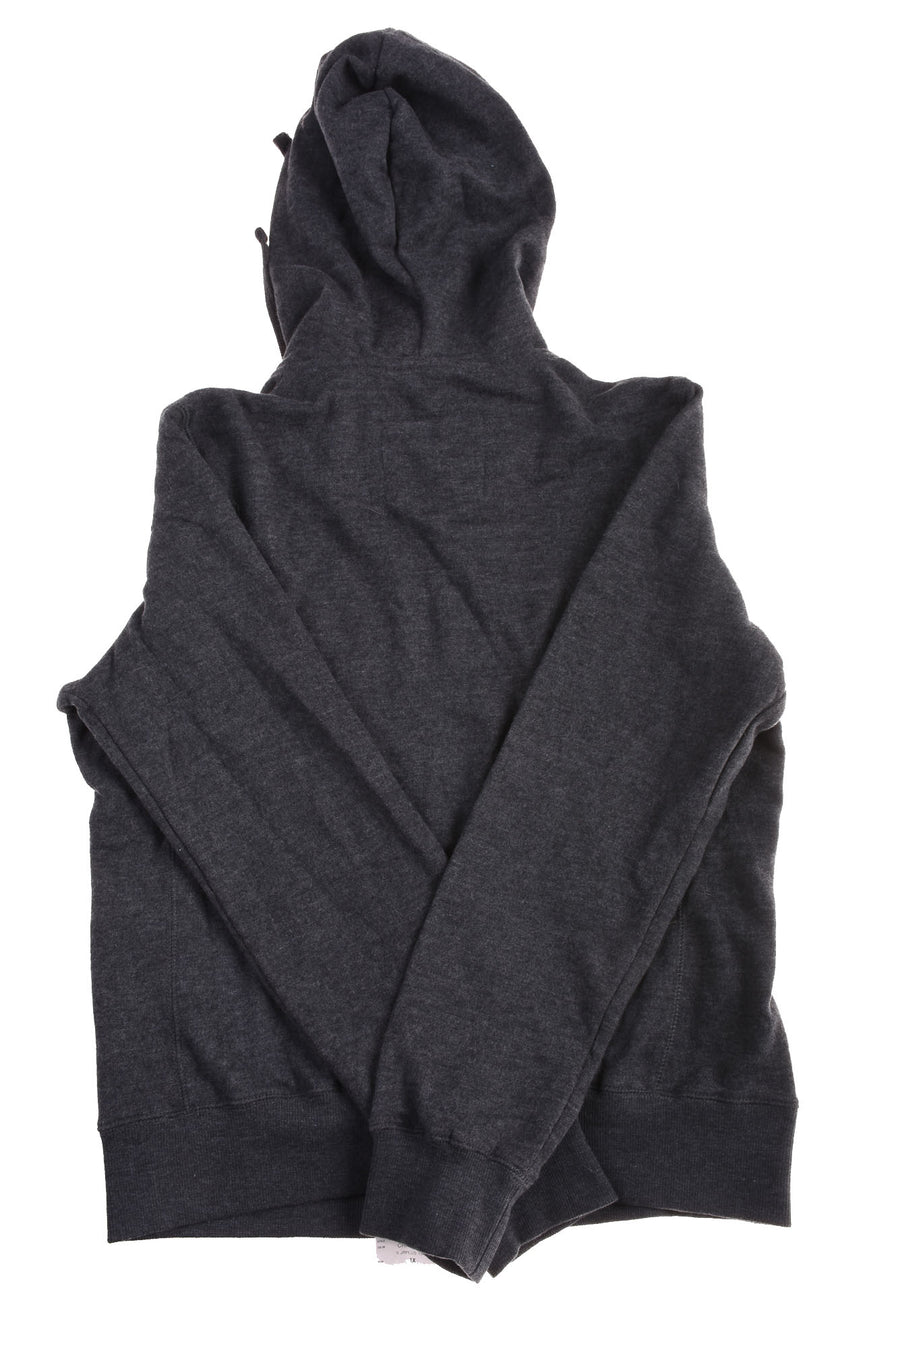 NEW Reflex Women's Plus Hoodie 1X Gray